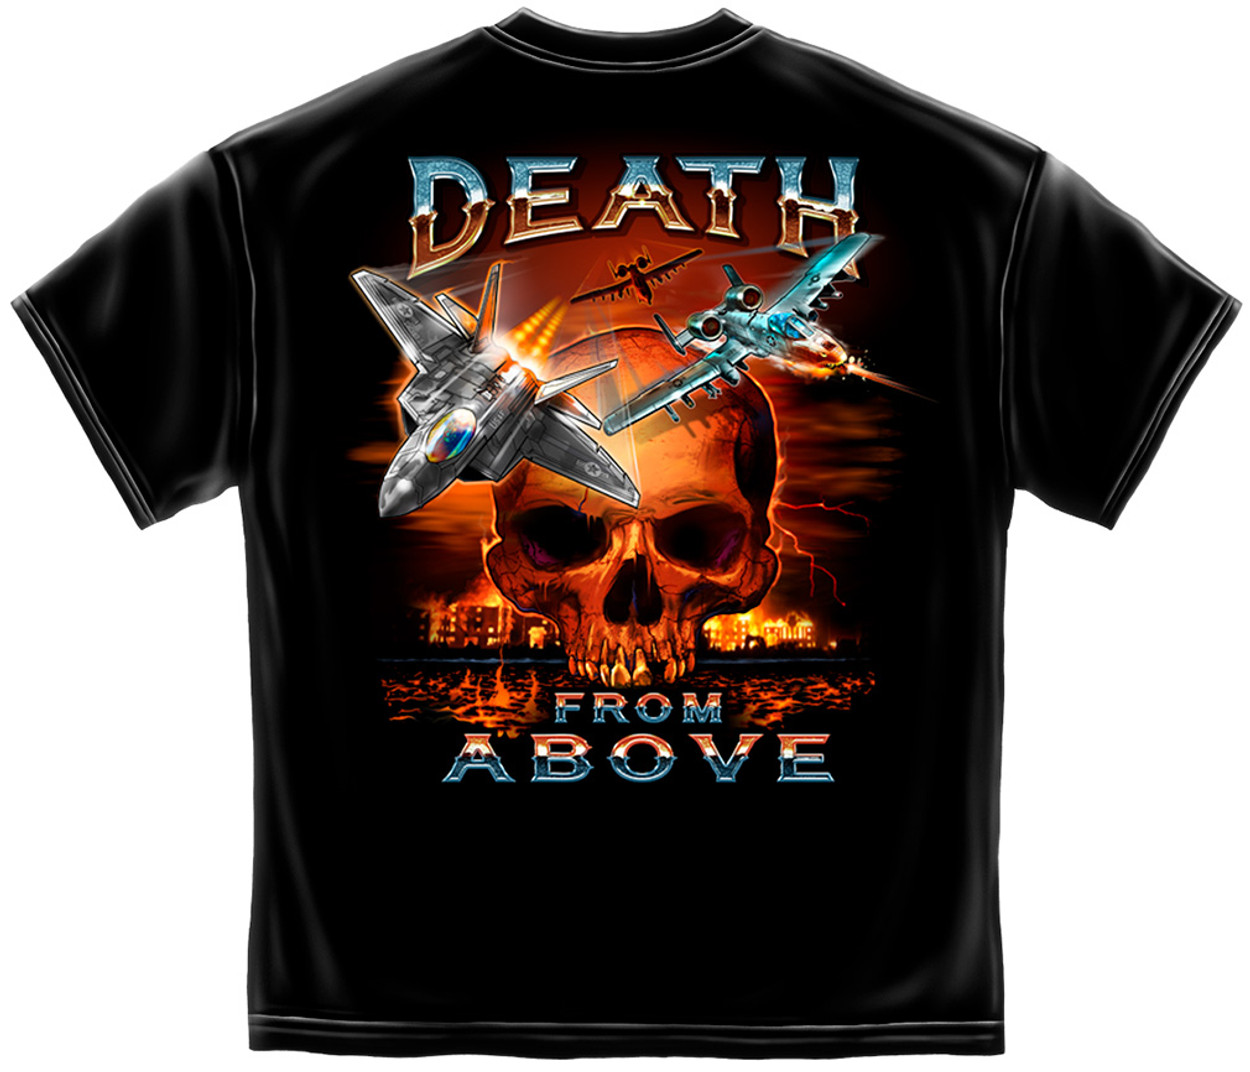 da3217a4 **(OFFICIALLY-LICENSED-U.S.AIR-FORCE &  DEATH-FROM-ABOVE/FIRE-SKULL,NICE-DETAILED-CUSTOM-GRAPHIC -PRINTED/PREMIUM-DOUBLE-SIDED-MILITARY-VETERAN-TEES)**